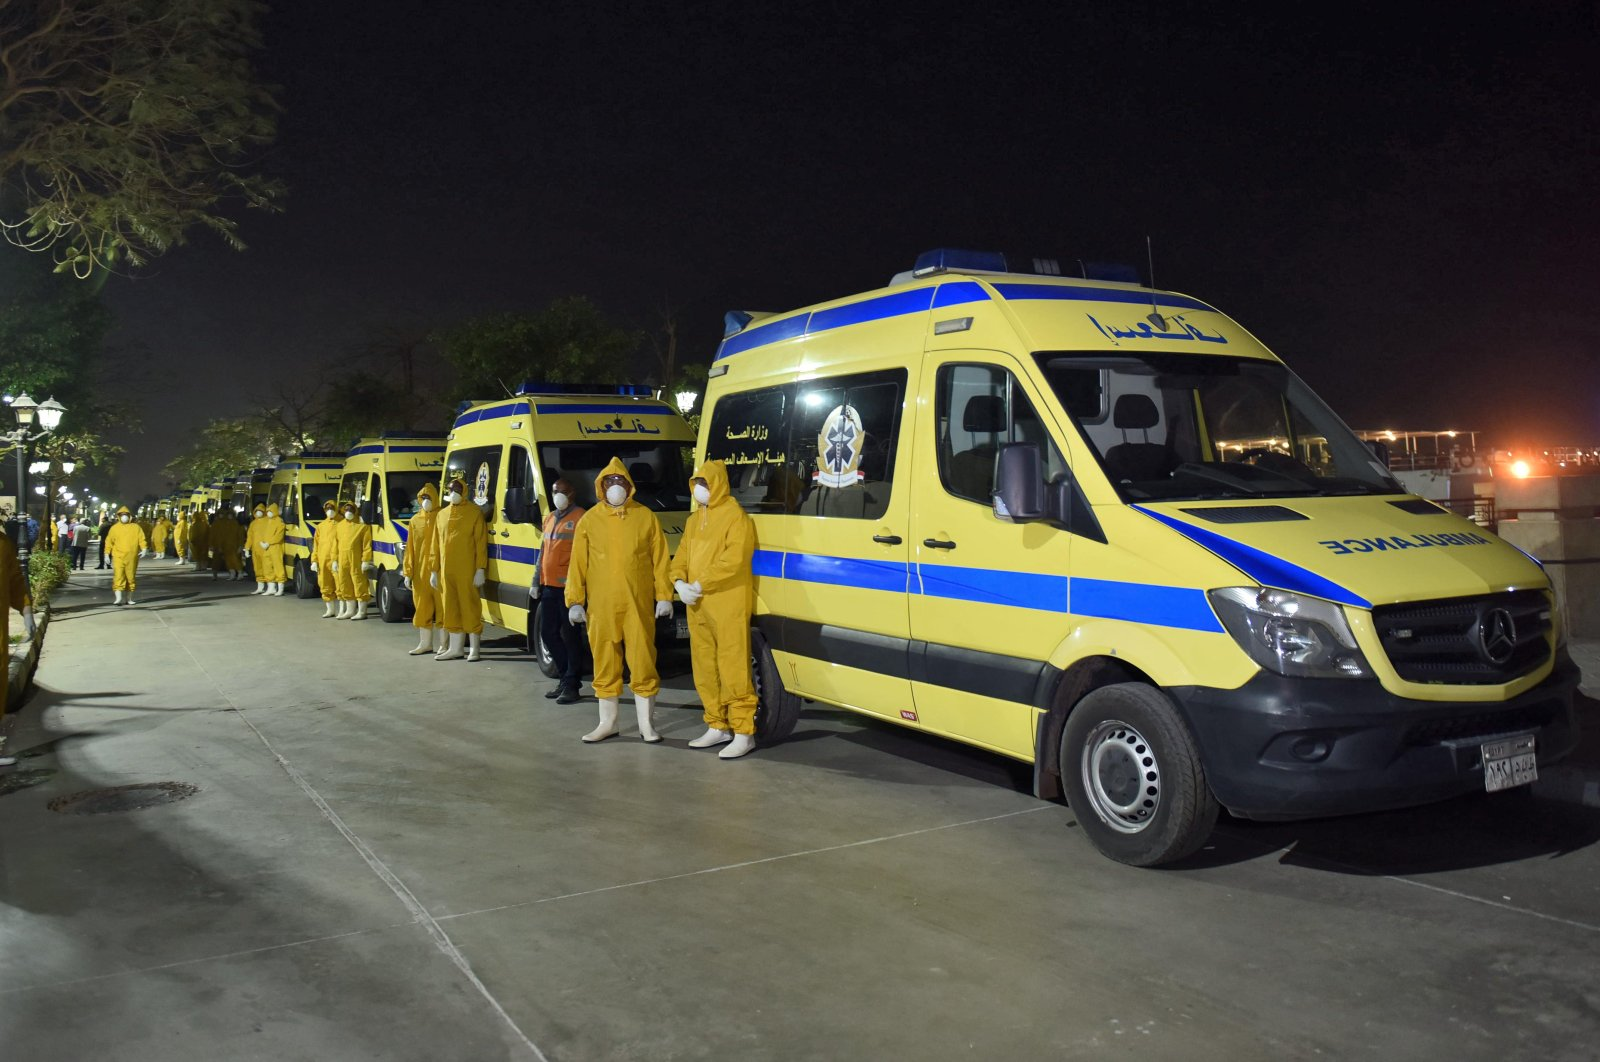 Egyptian health ministry emergency responders stand next to ambulances ready on the scene to transport suspected COVID-19 coronavirus disease cases that were detected on a Nile cruise ship, in the southern city of Luxor late on March 7, 2020. (AFP Photo)